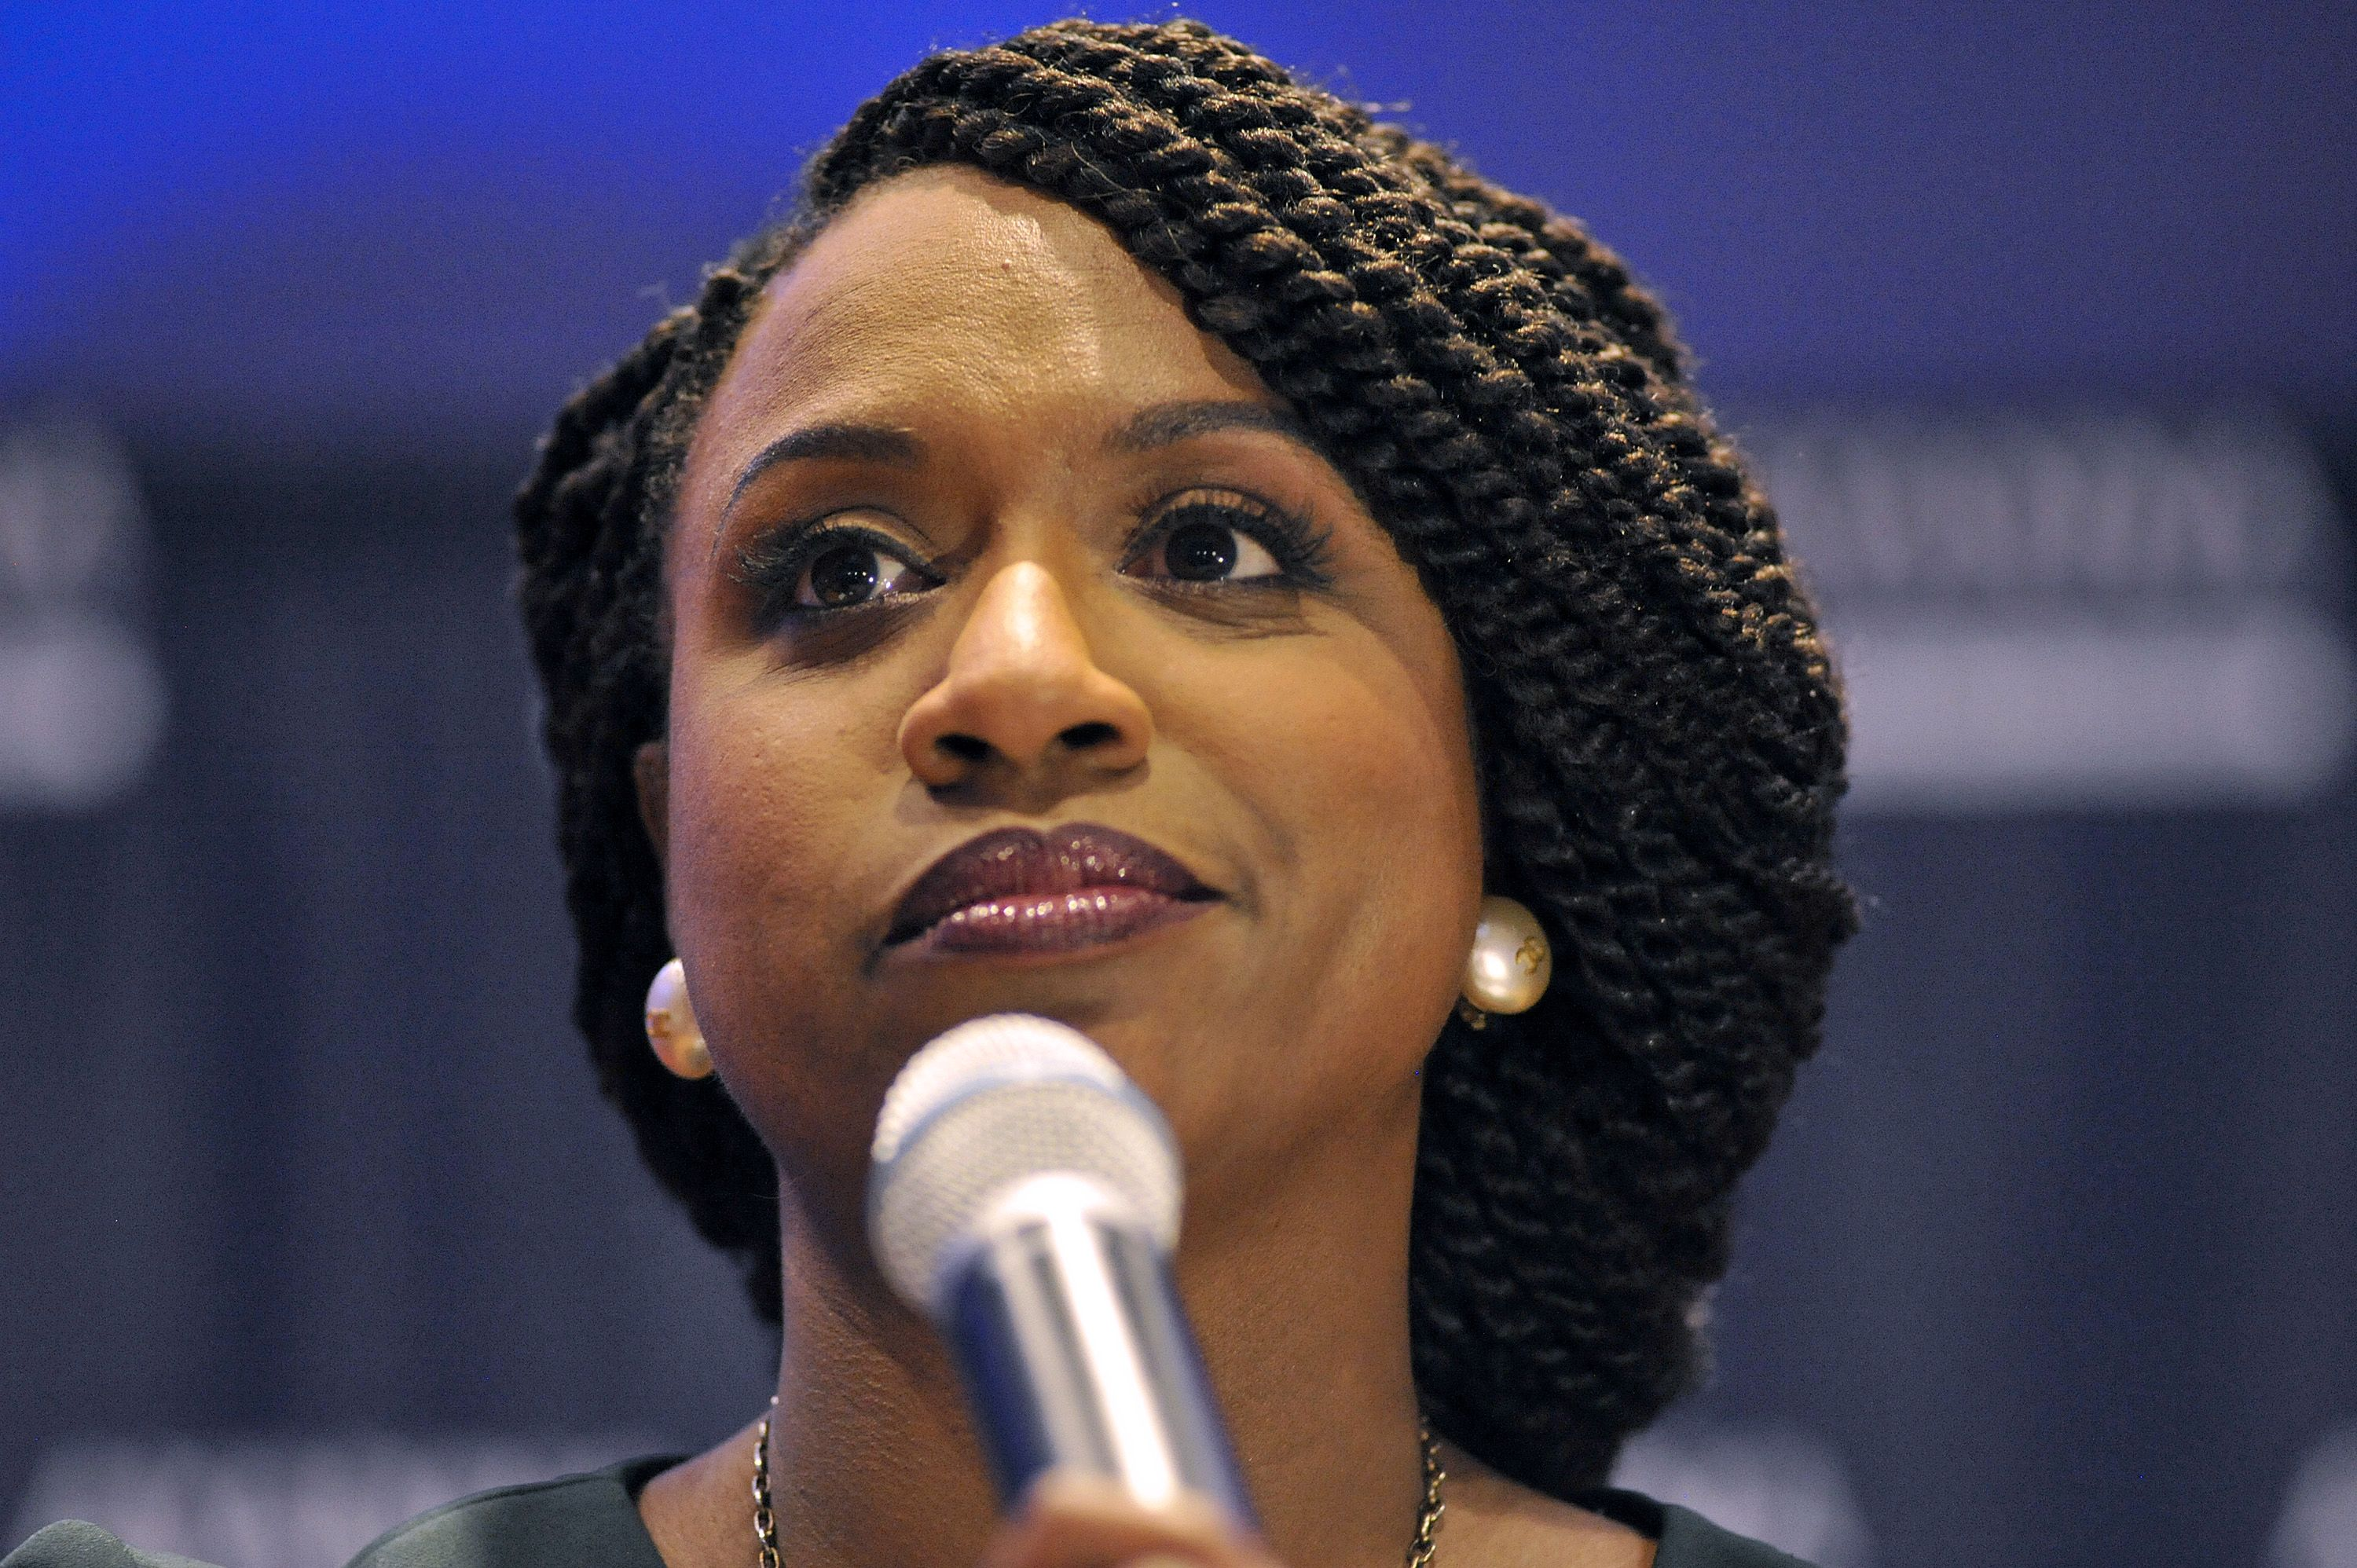 Ayanna Pressley, Boston City Council member and Democratic candidate for congress, delivers her victory speech at the IBEW Local 103 in Dorchester, Massachusetts, on September 4, 2018. Pressley declined to endorse a candidate in the 2020 Senate primary in her home state.